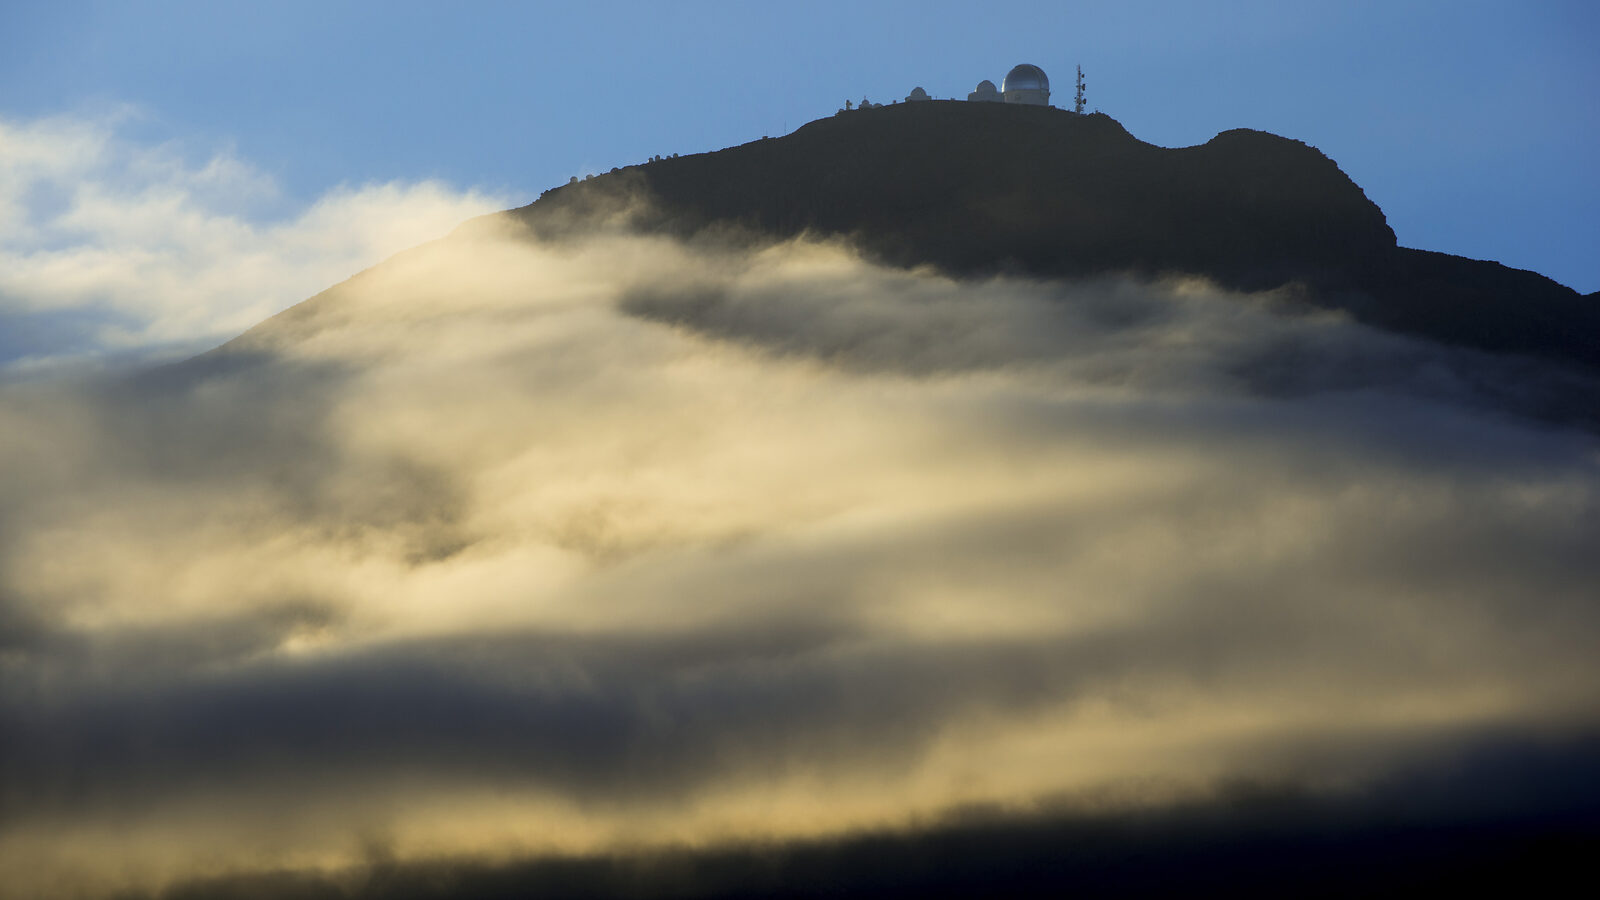 Cerro Tololo Inter-American Observatory above the clouds